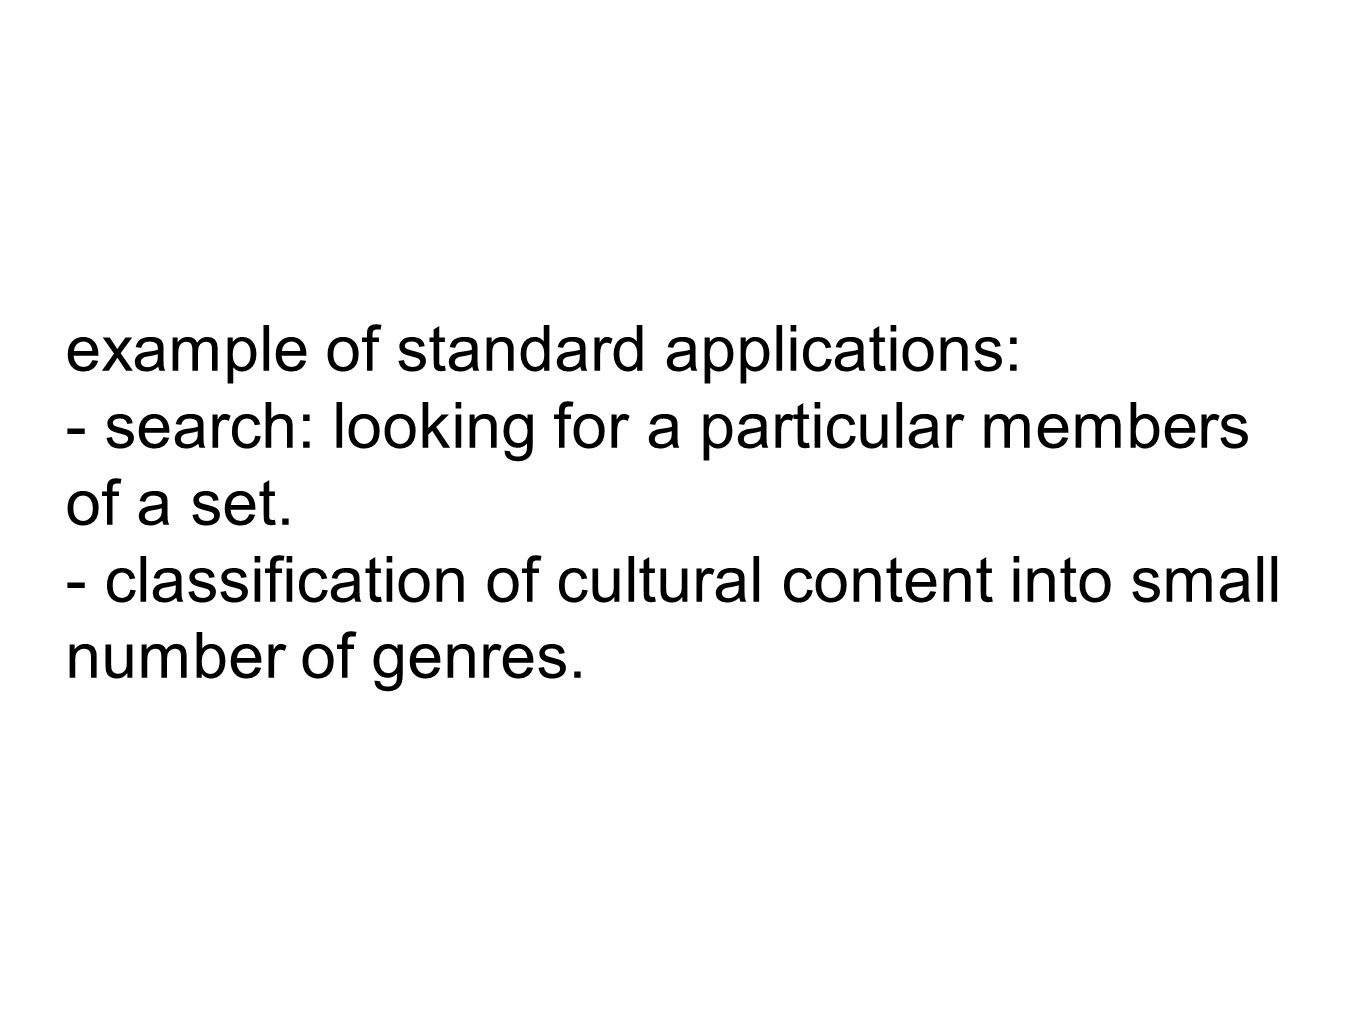 example of standard applications: - search: looking for a particular members of a set. - classification of cultural content into small number of genre